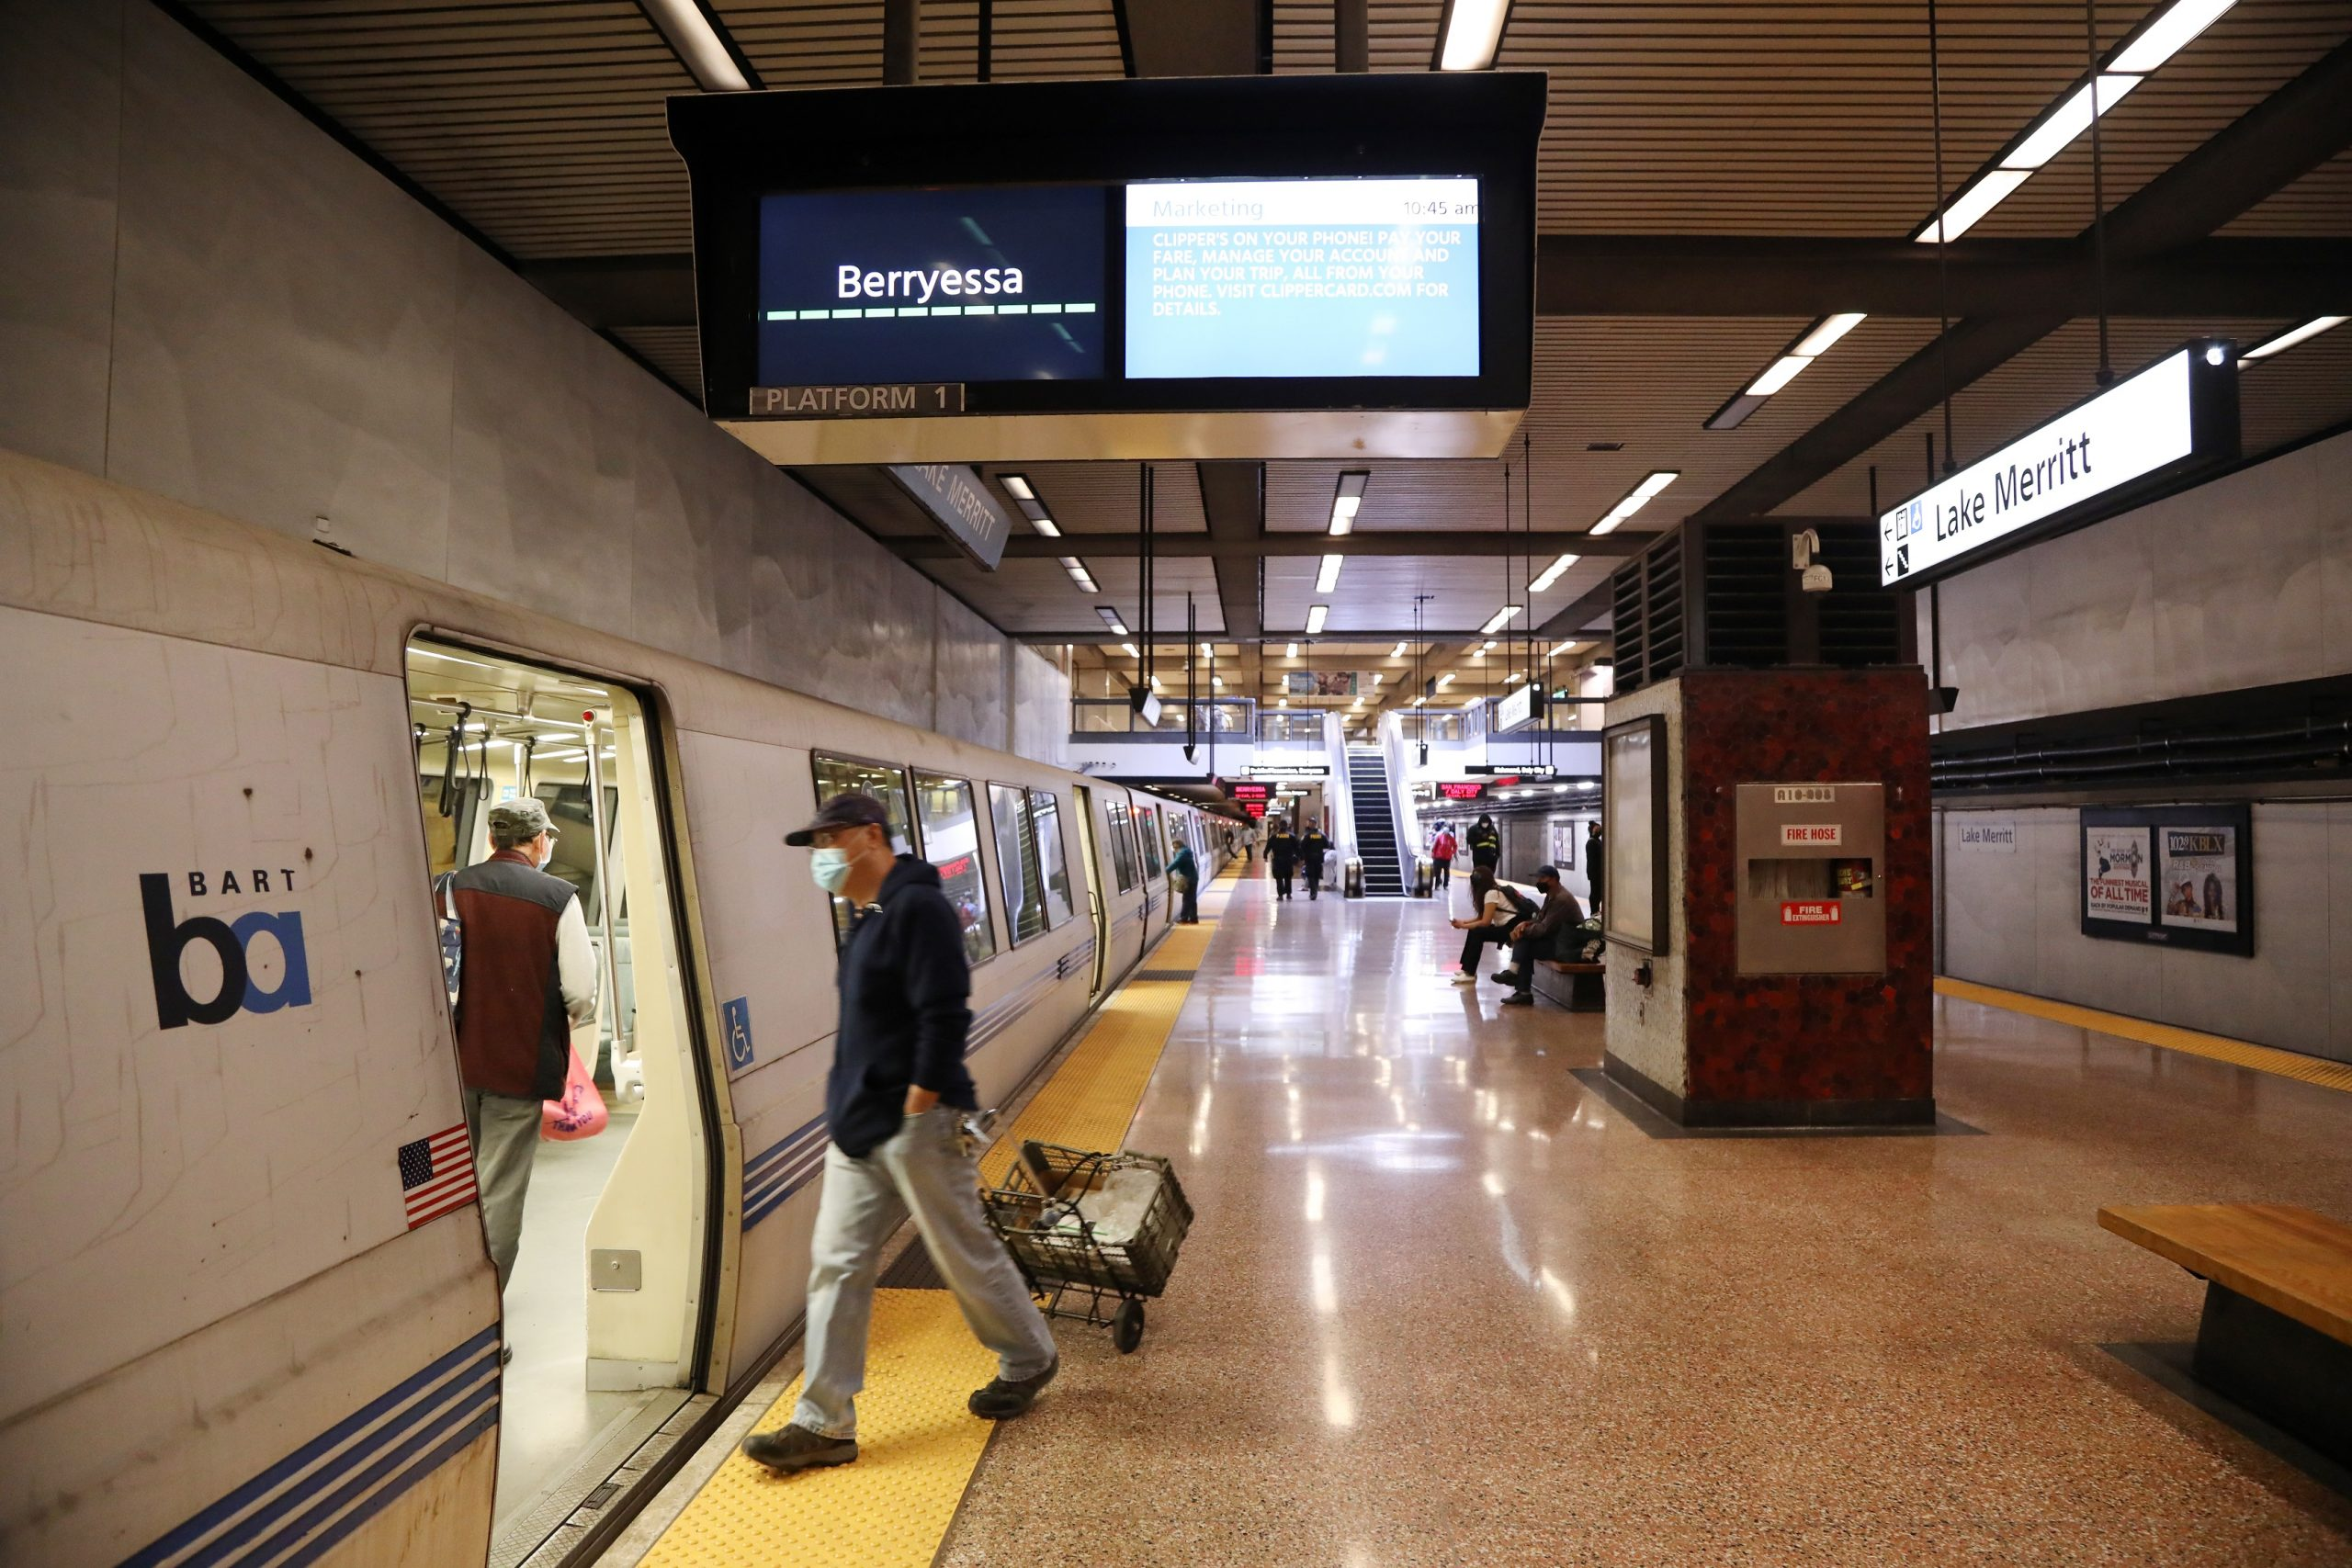 """BART Maintenance and Engineering staffers retrofitted existing LED displays at Lake Merritt Station with full-color monitors to """"demonstrate that this is an efficient, cost-effective method to get more information to customers,"""" according to the agency."""